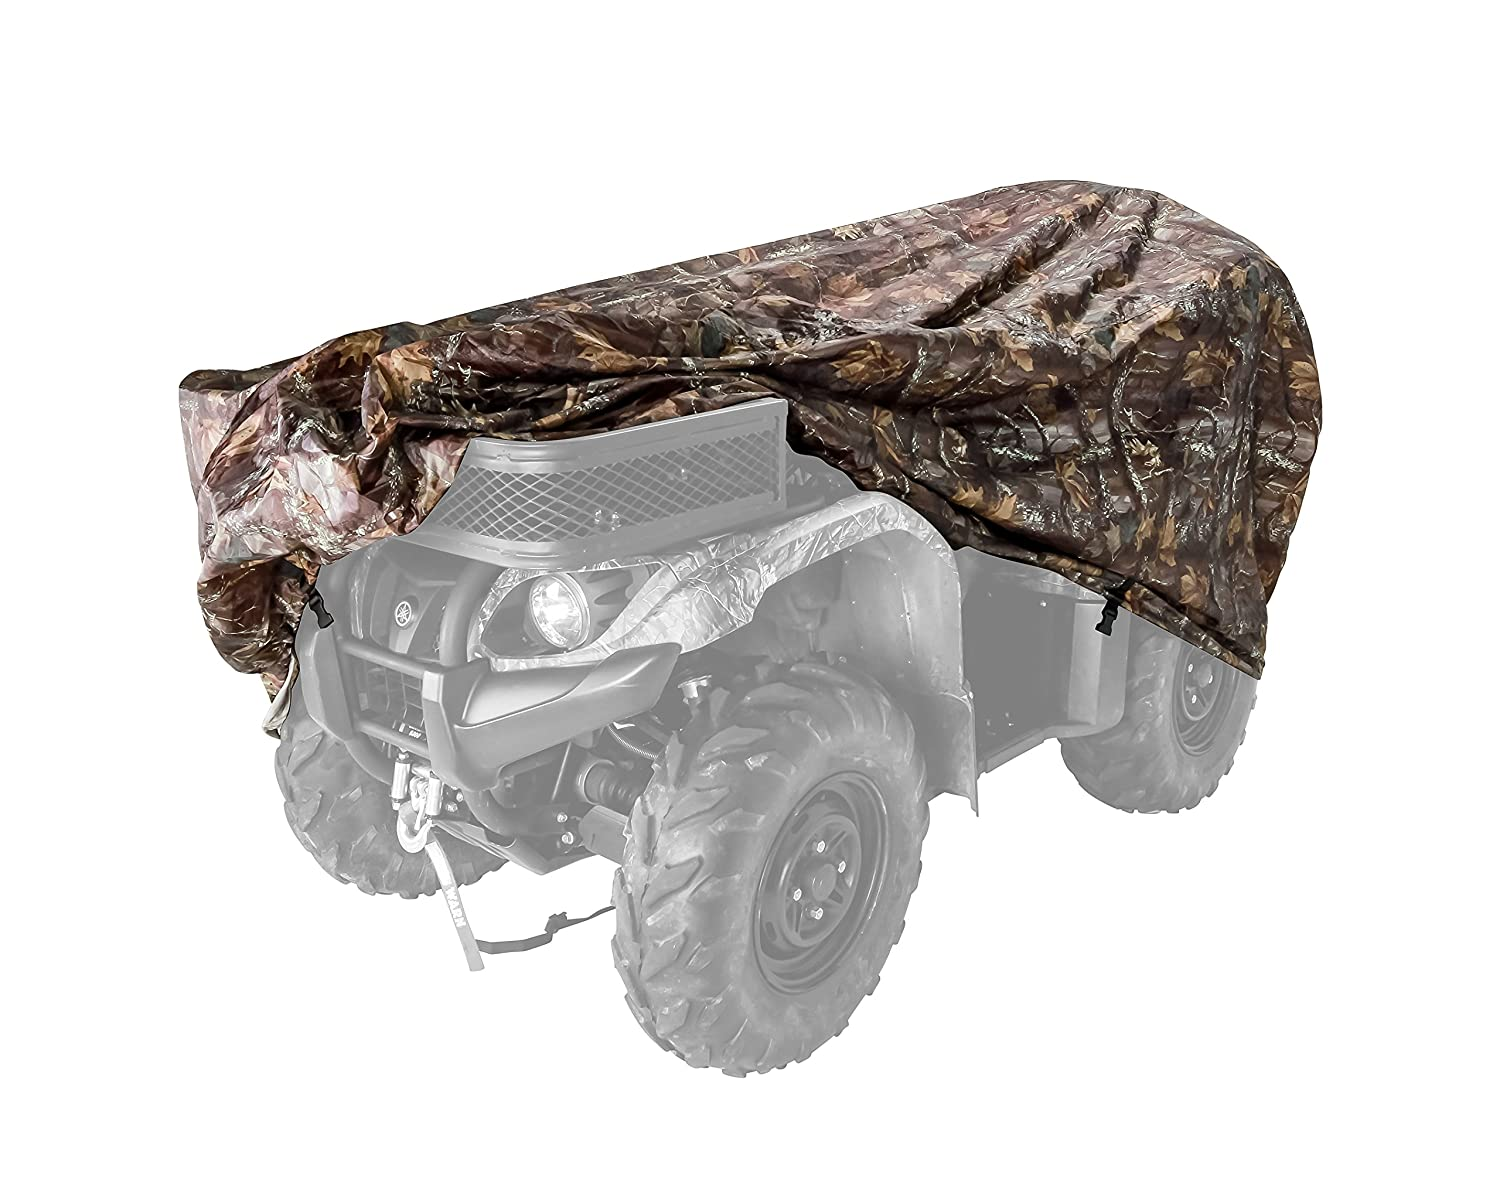 Black Boar Extra Large (450cc and Up) Protect Your ATV from Rain, Snow, Dirt, Damaging UV Rays While in Storage (Jungle Camo) (66021) Camco